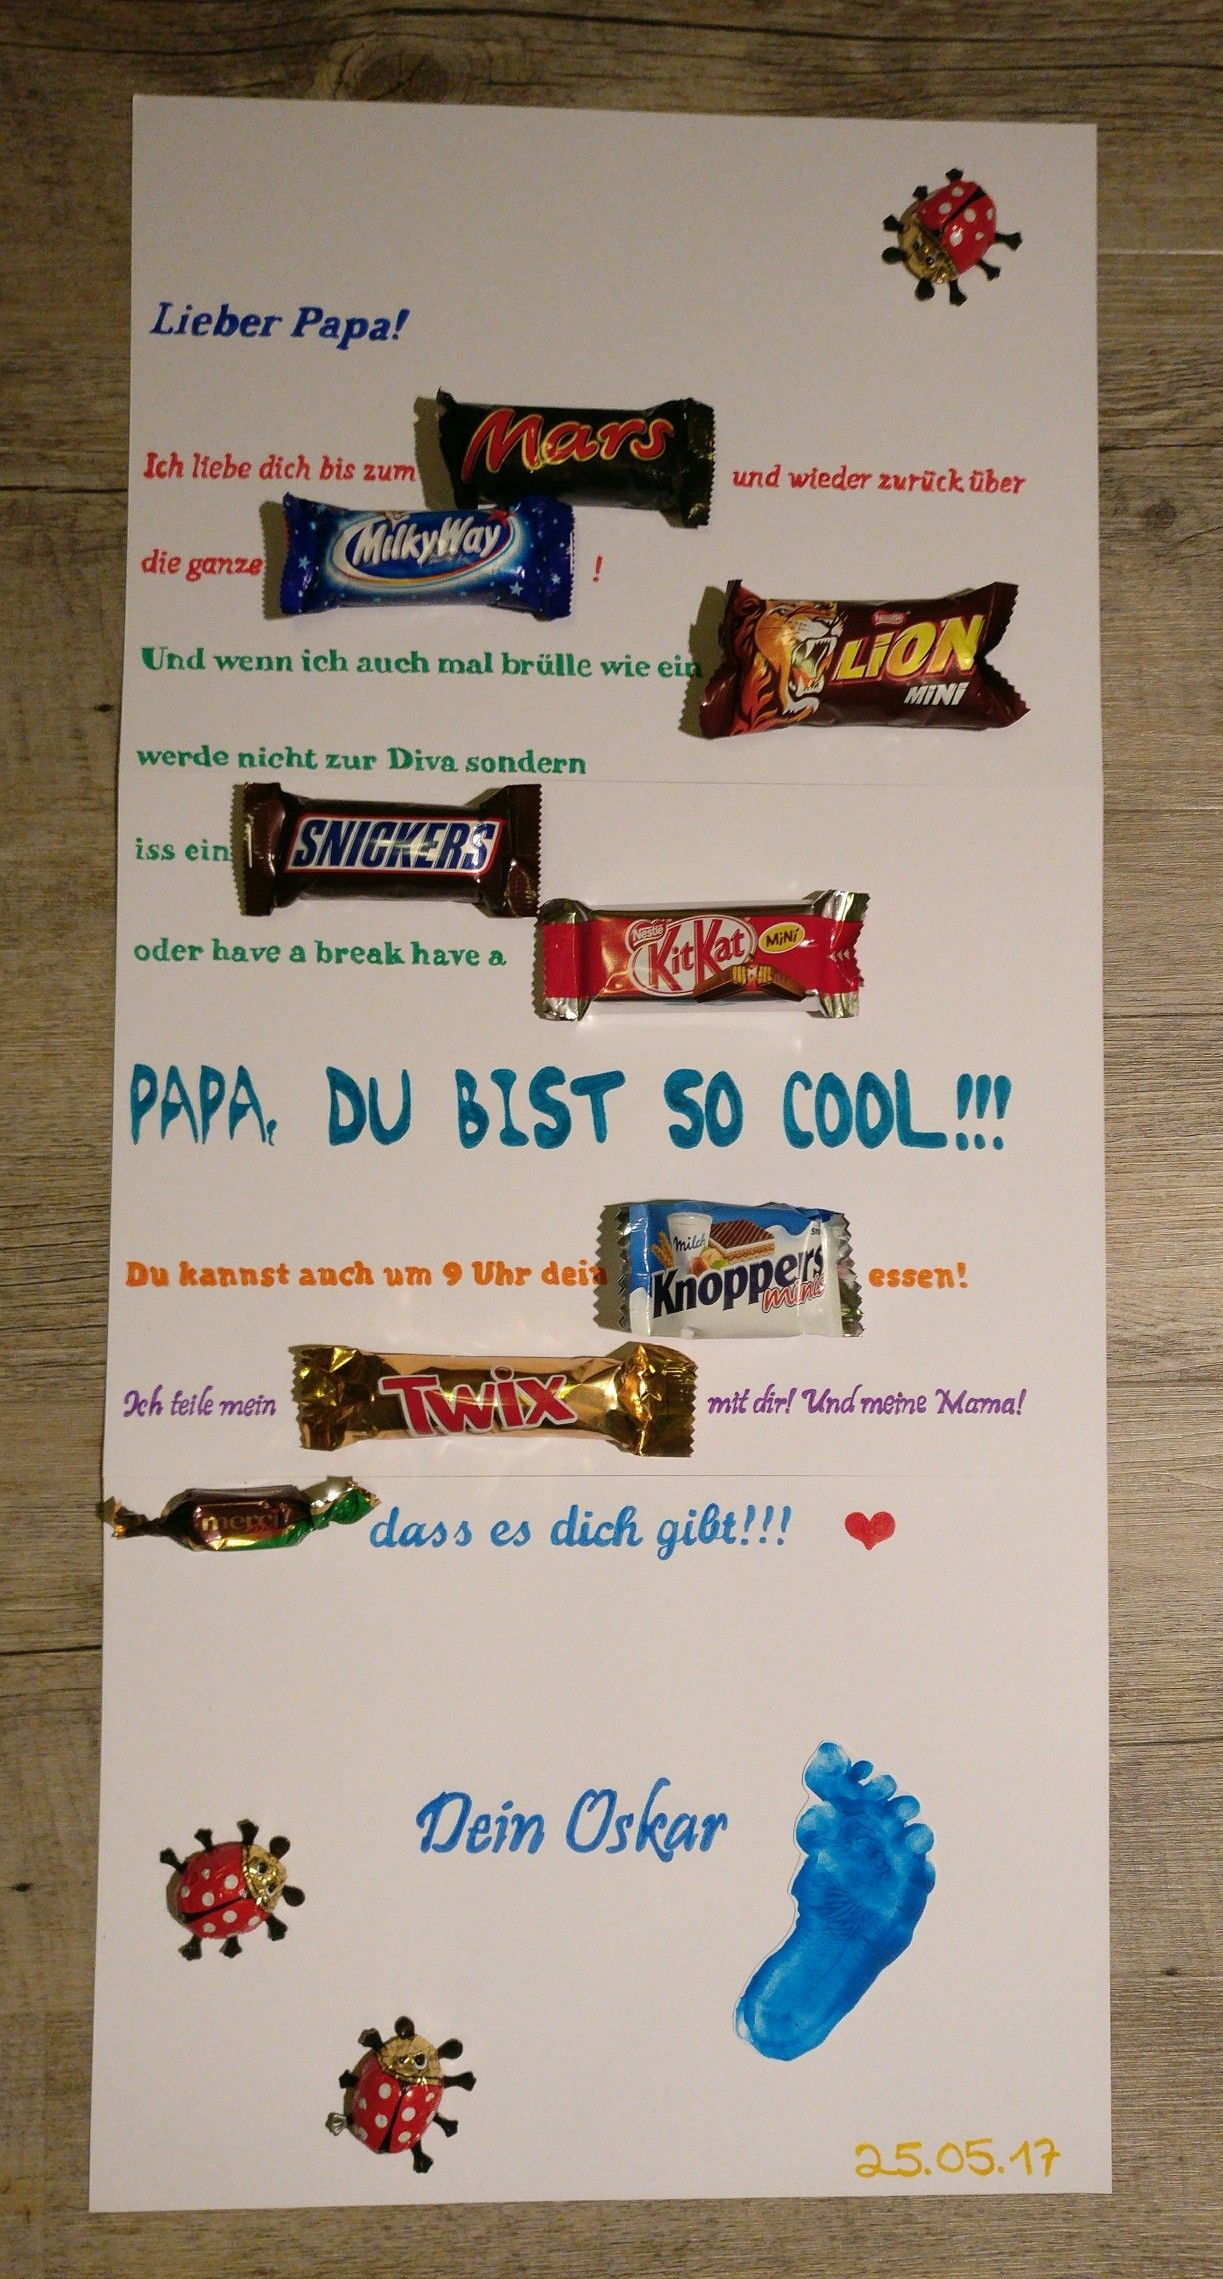 Vatertagsgeschenke Ideen Vatertag Mars Milky Way Lion Snickers Kit Kat Knoppers